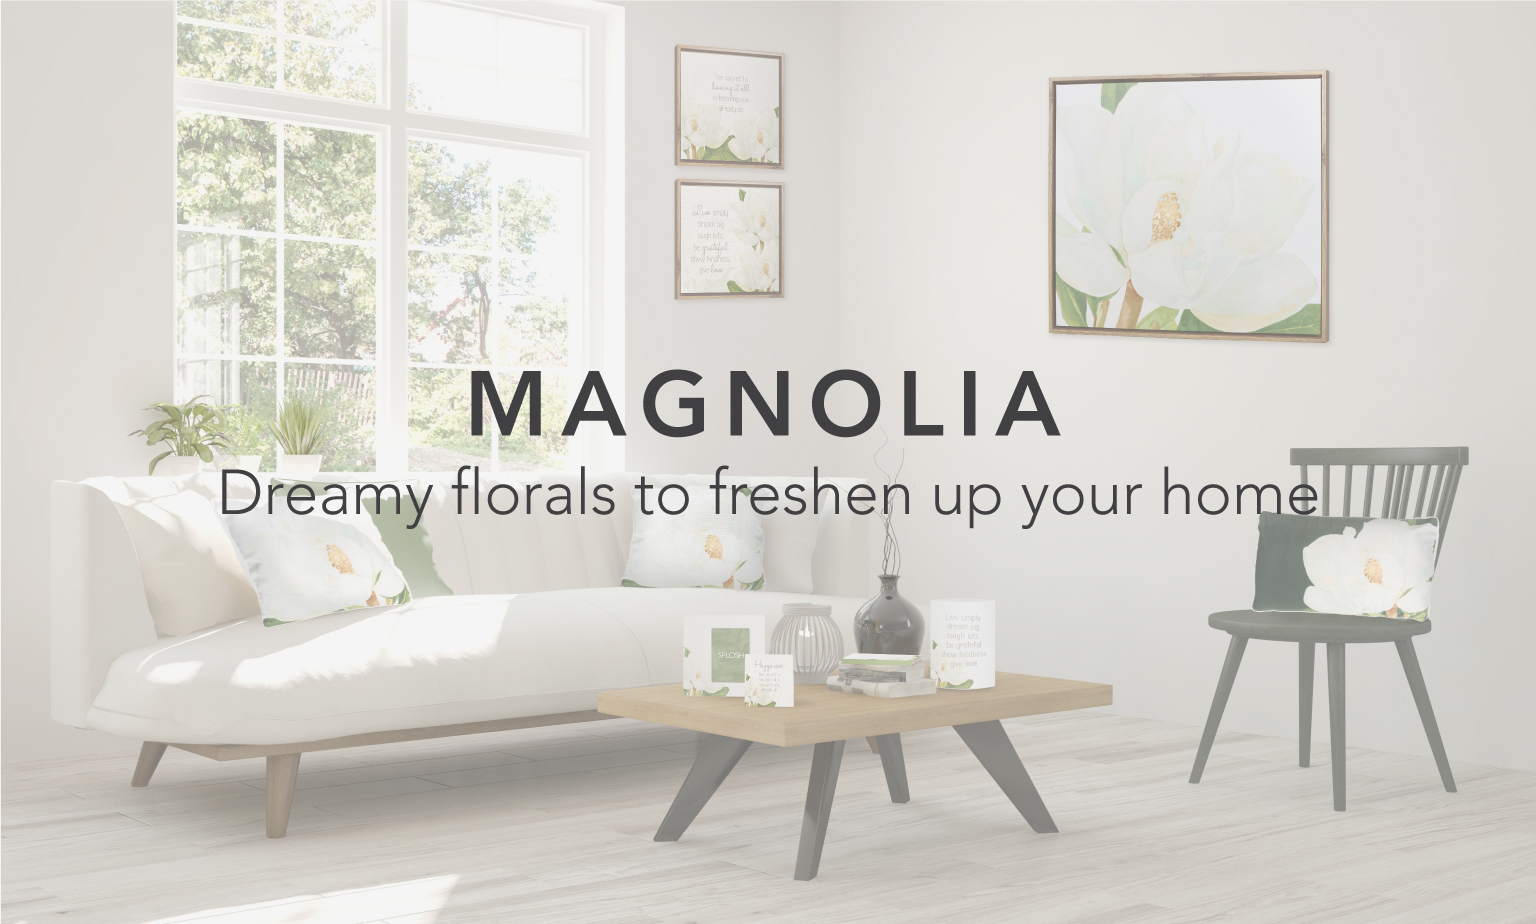 Shop our Magnolia collection!